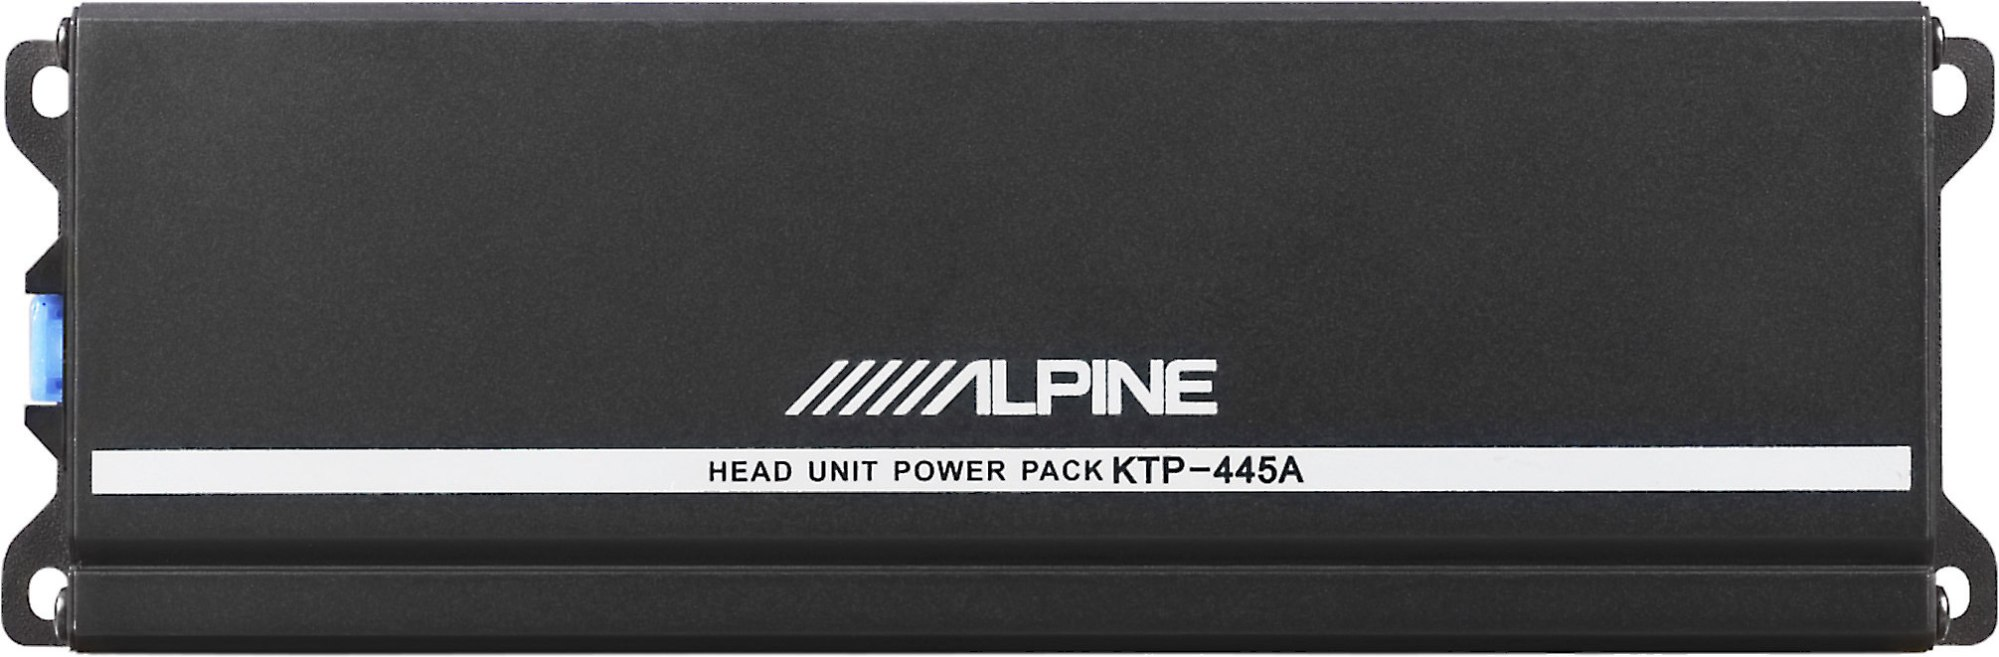 hight resolution of alpine ktp 445a power pack compact upgrade amplifier for your alpine receiver 45 watts rms x 4 at crutchfield com